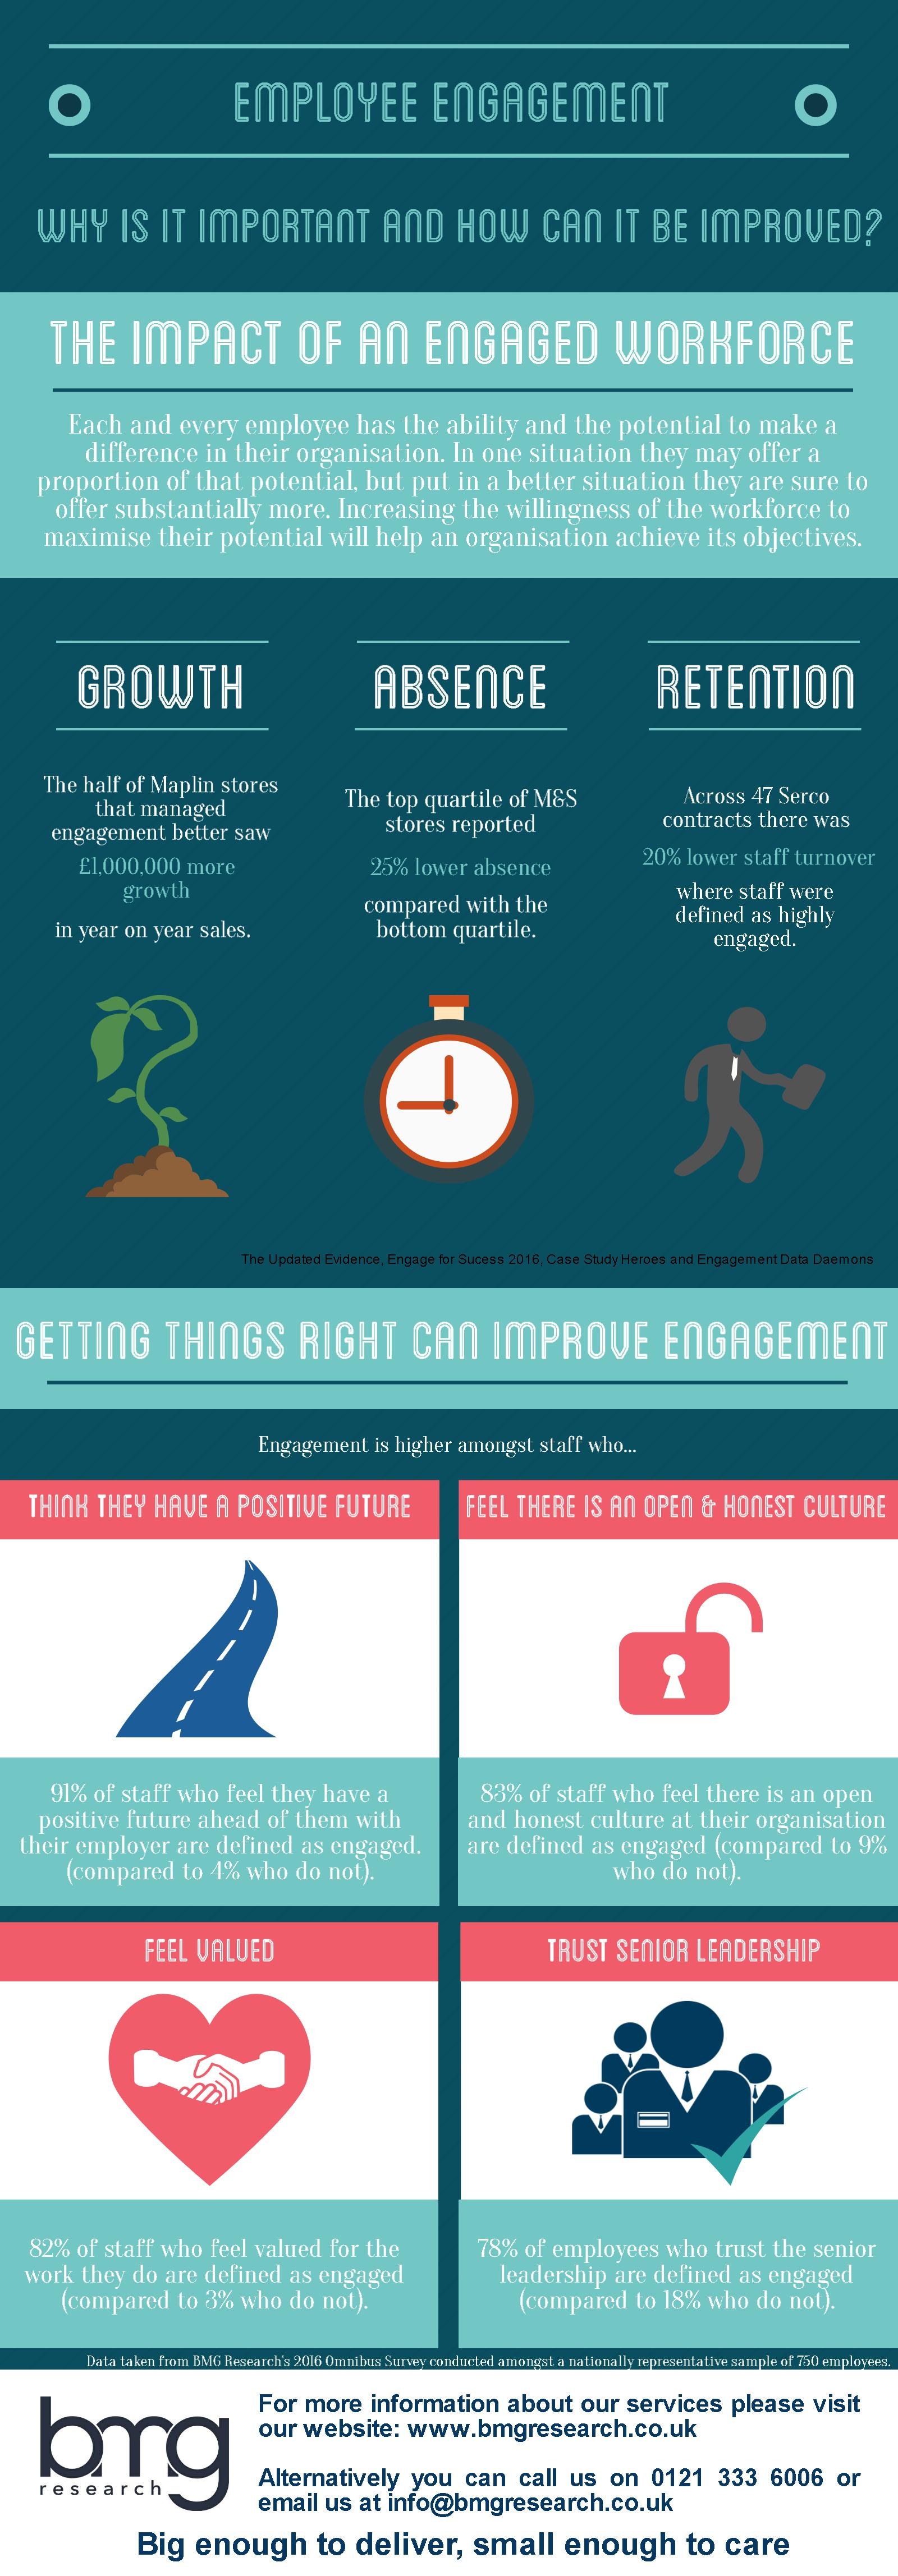 why-is-employee-engagement-important-and-how-can-it-be-improved_cropped